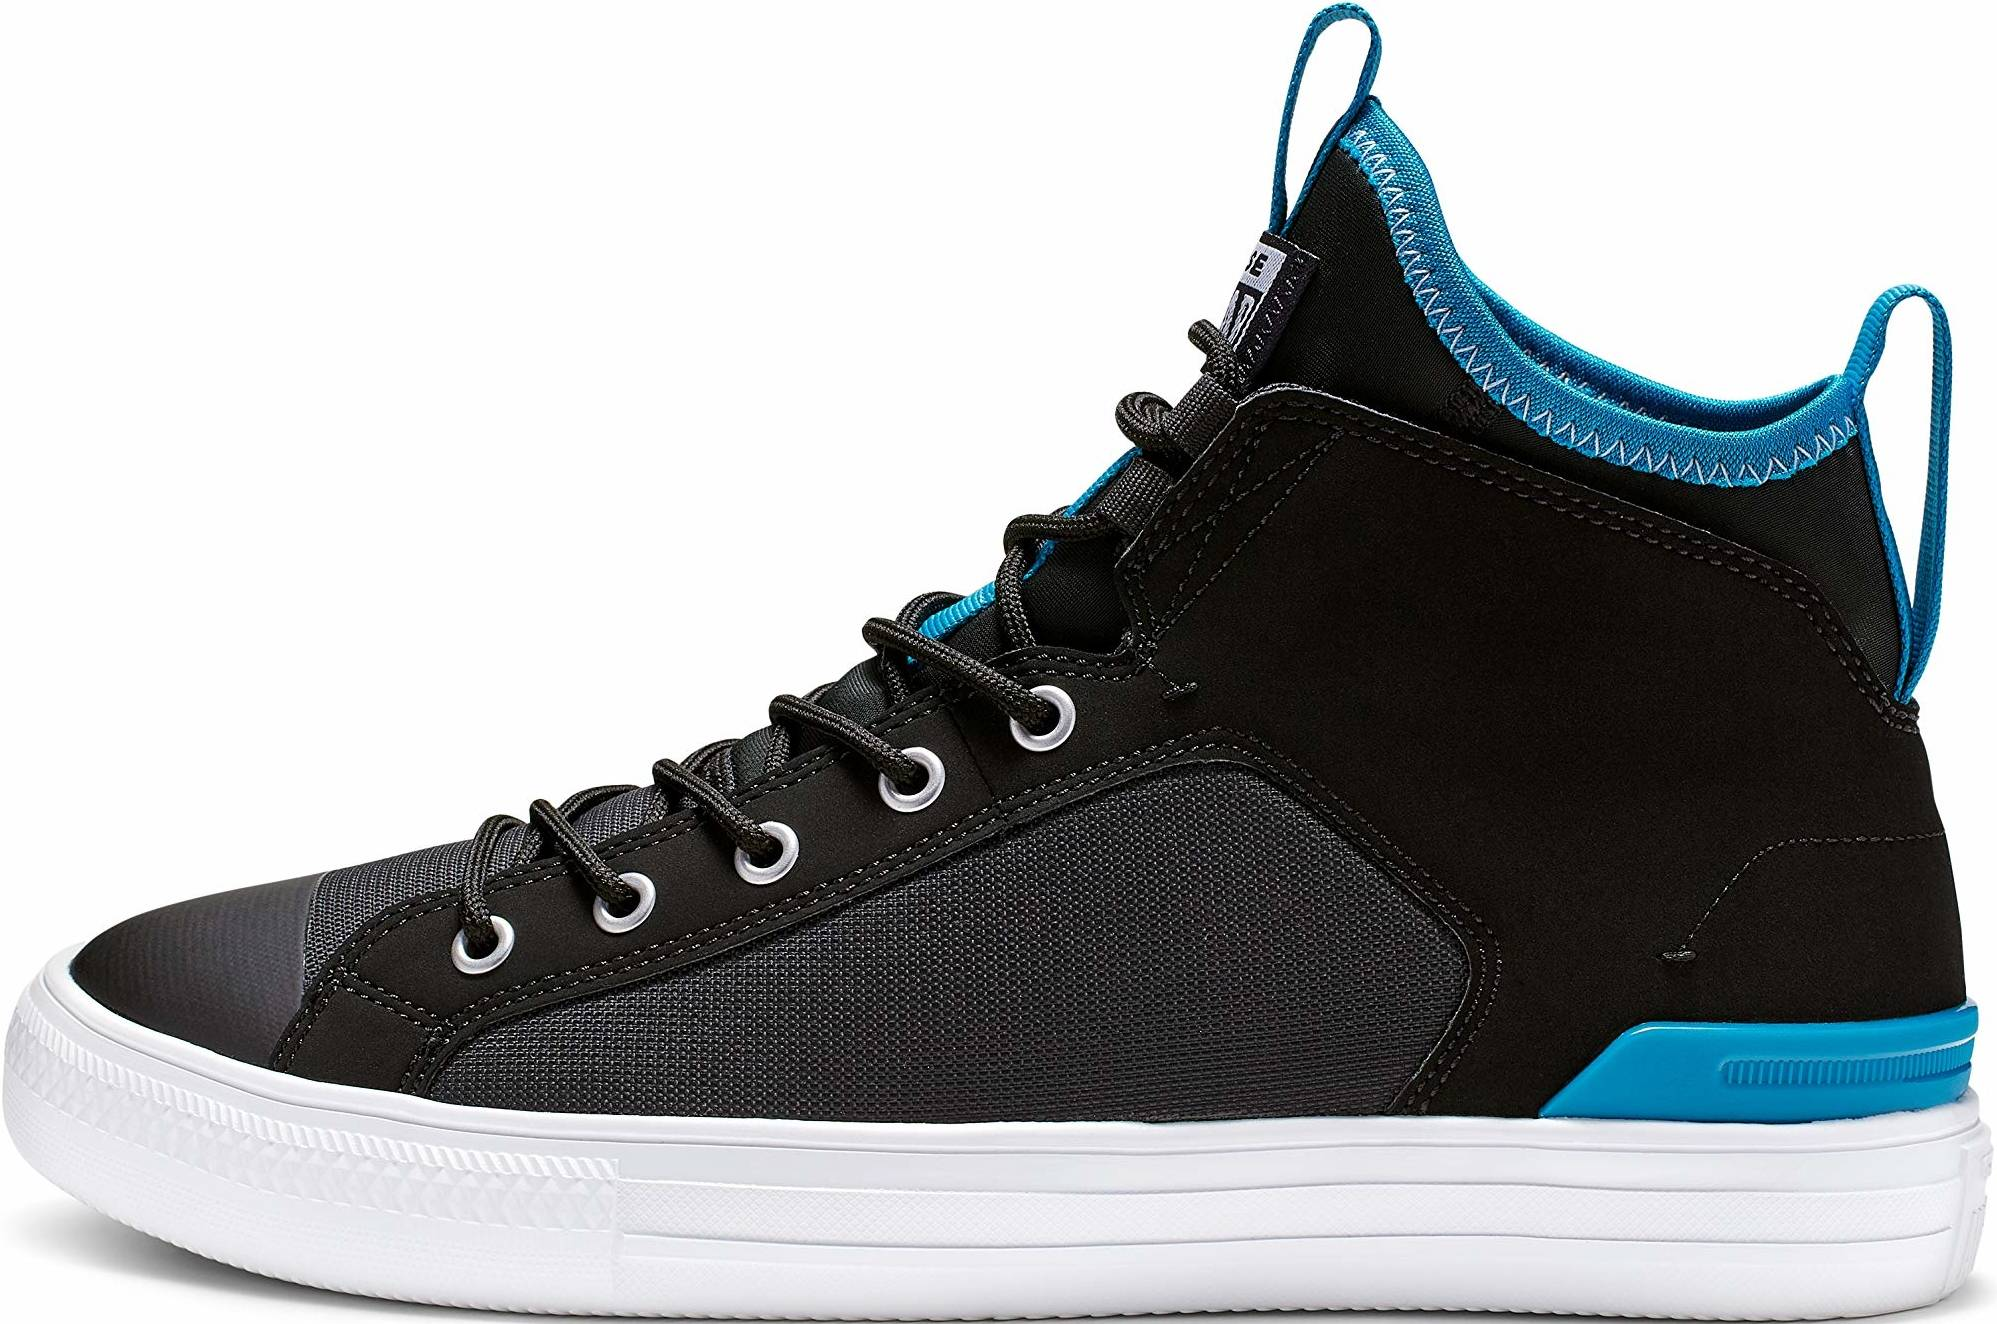 Inadecuado Playa Mount Bank  Converse Chuck Taylor All Star Ultra sneakers in blue + black (only $60) |  RunRepeat